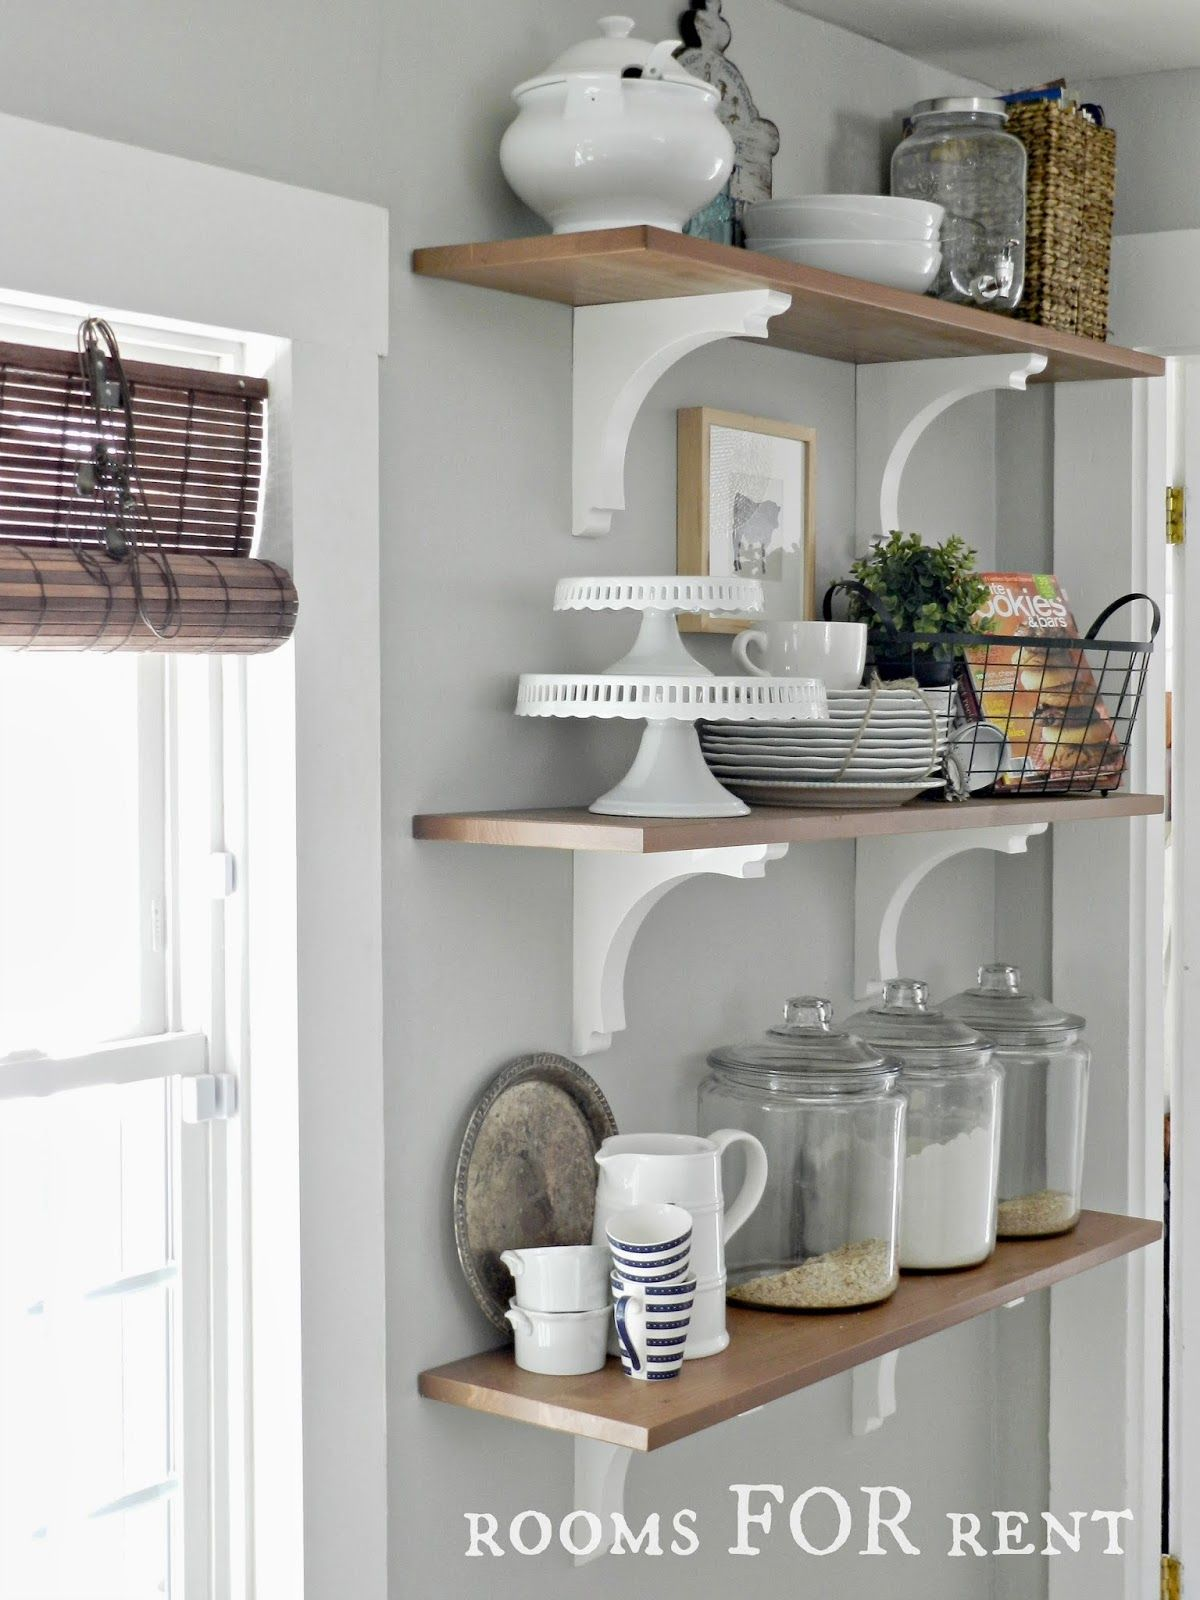 Decorating With Glass Canisters In The Kitchen Hiking Pinterest - Grey kitchen shelves